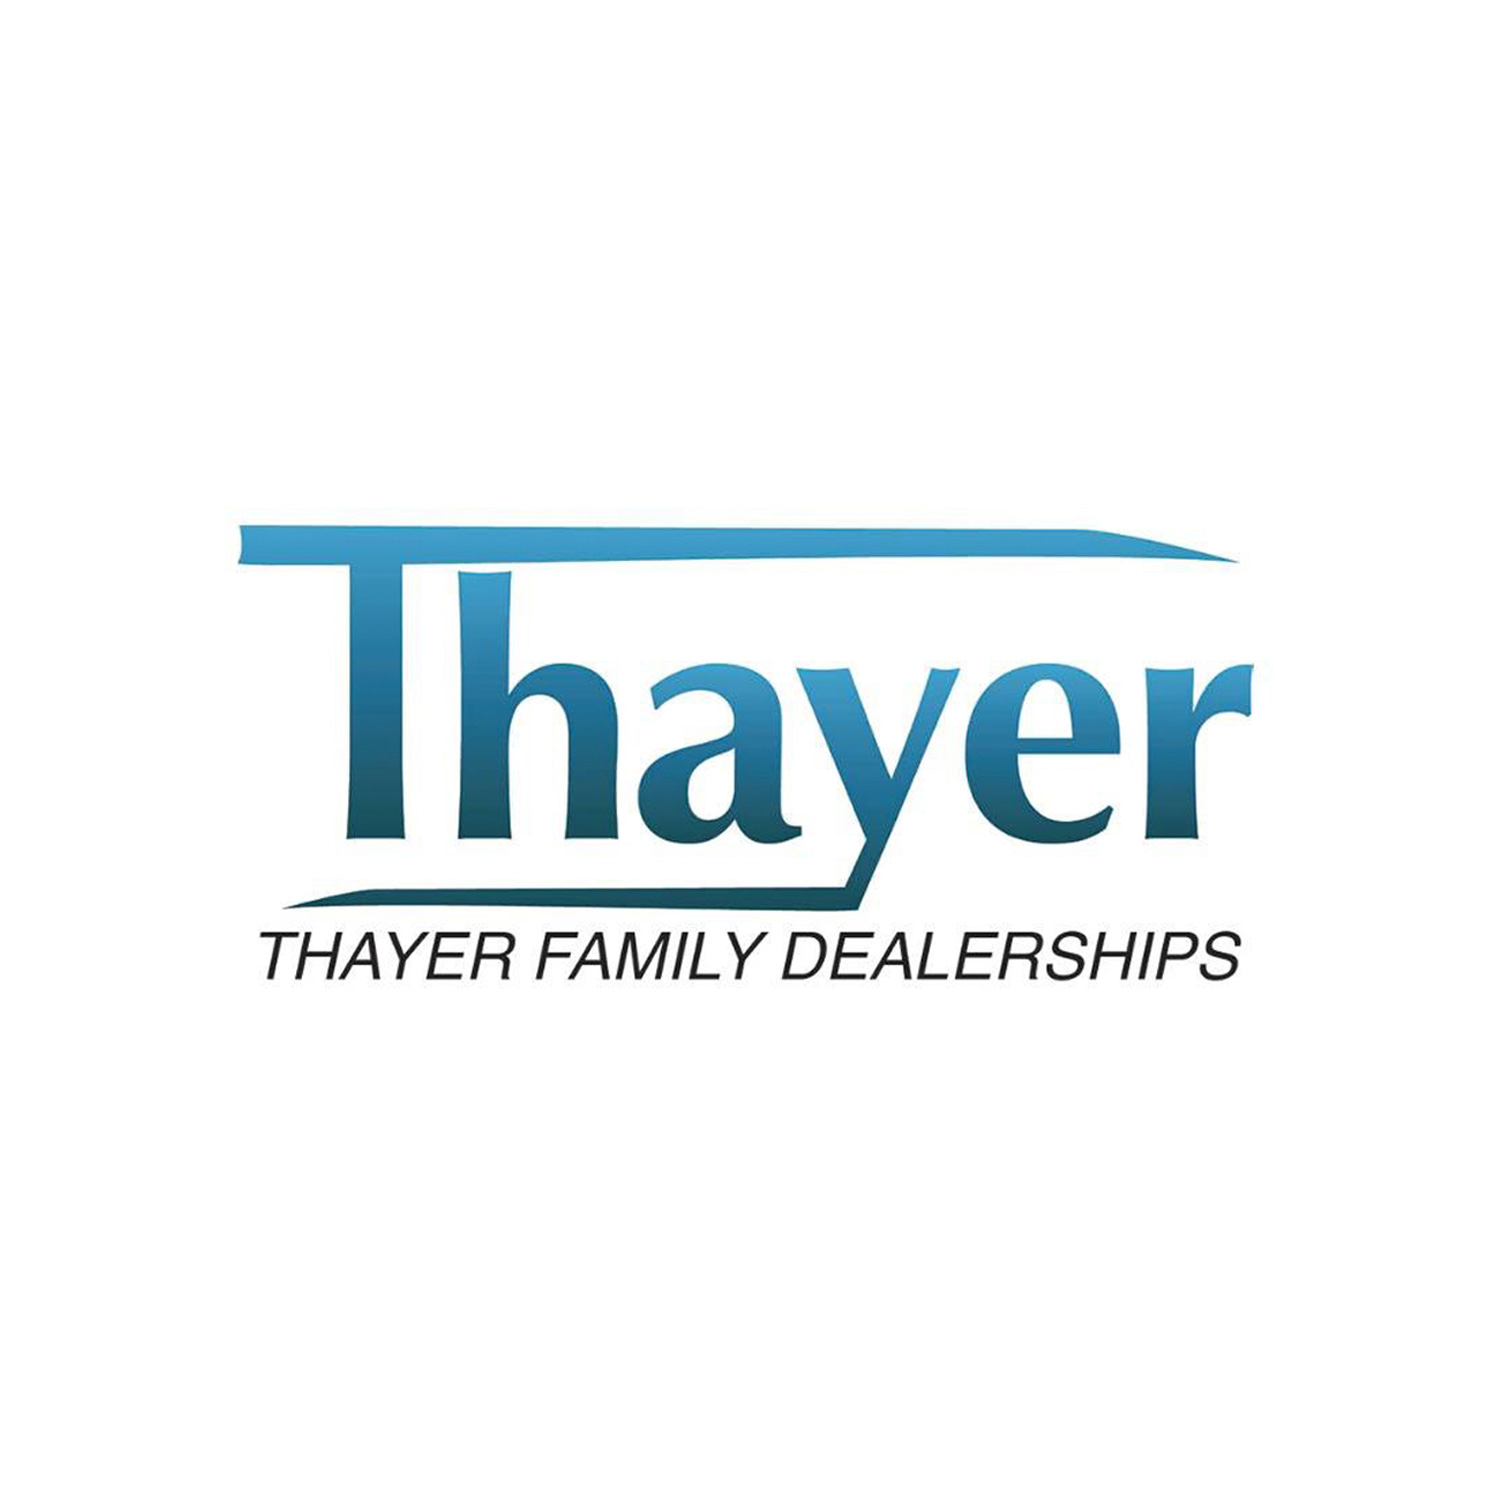 Thayer family dealerships - Family owned and operated, serving the Bowling Green community since 1935.